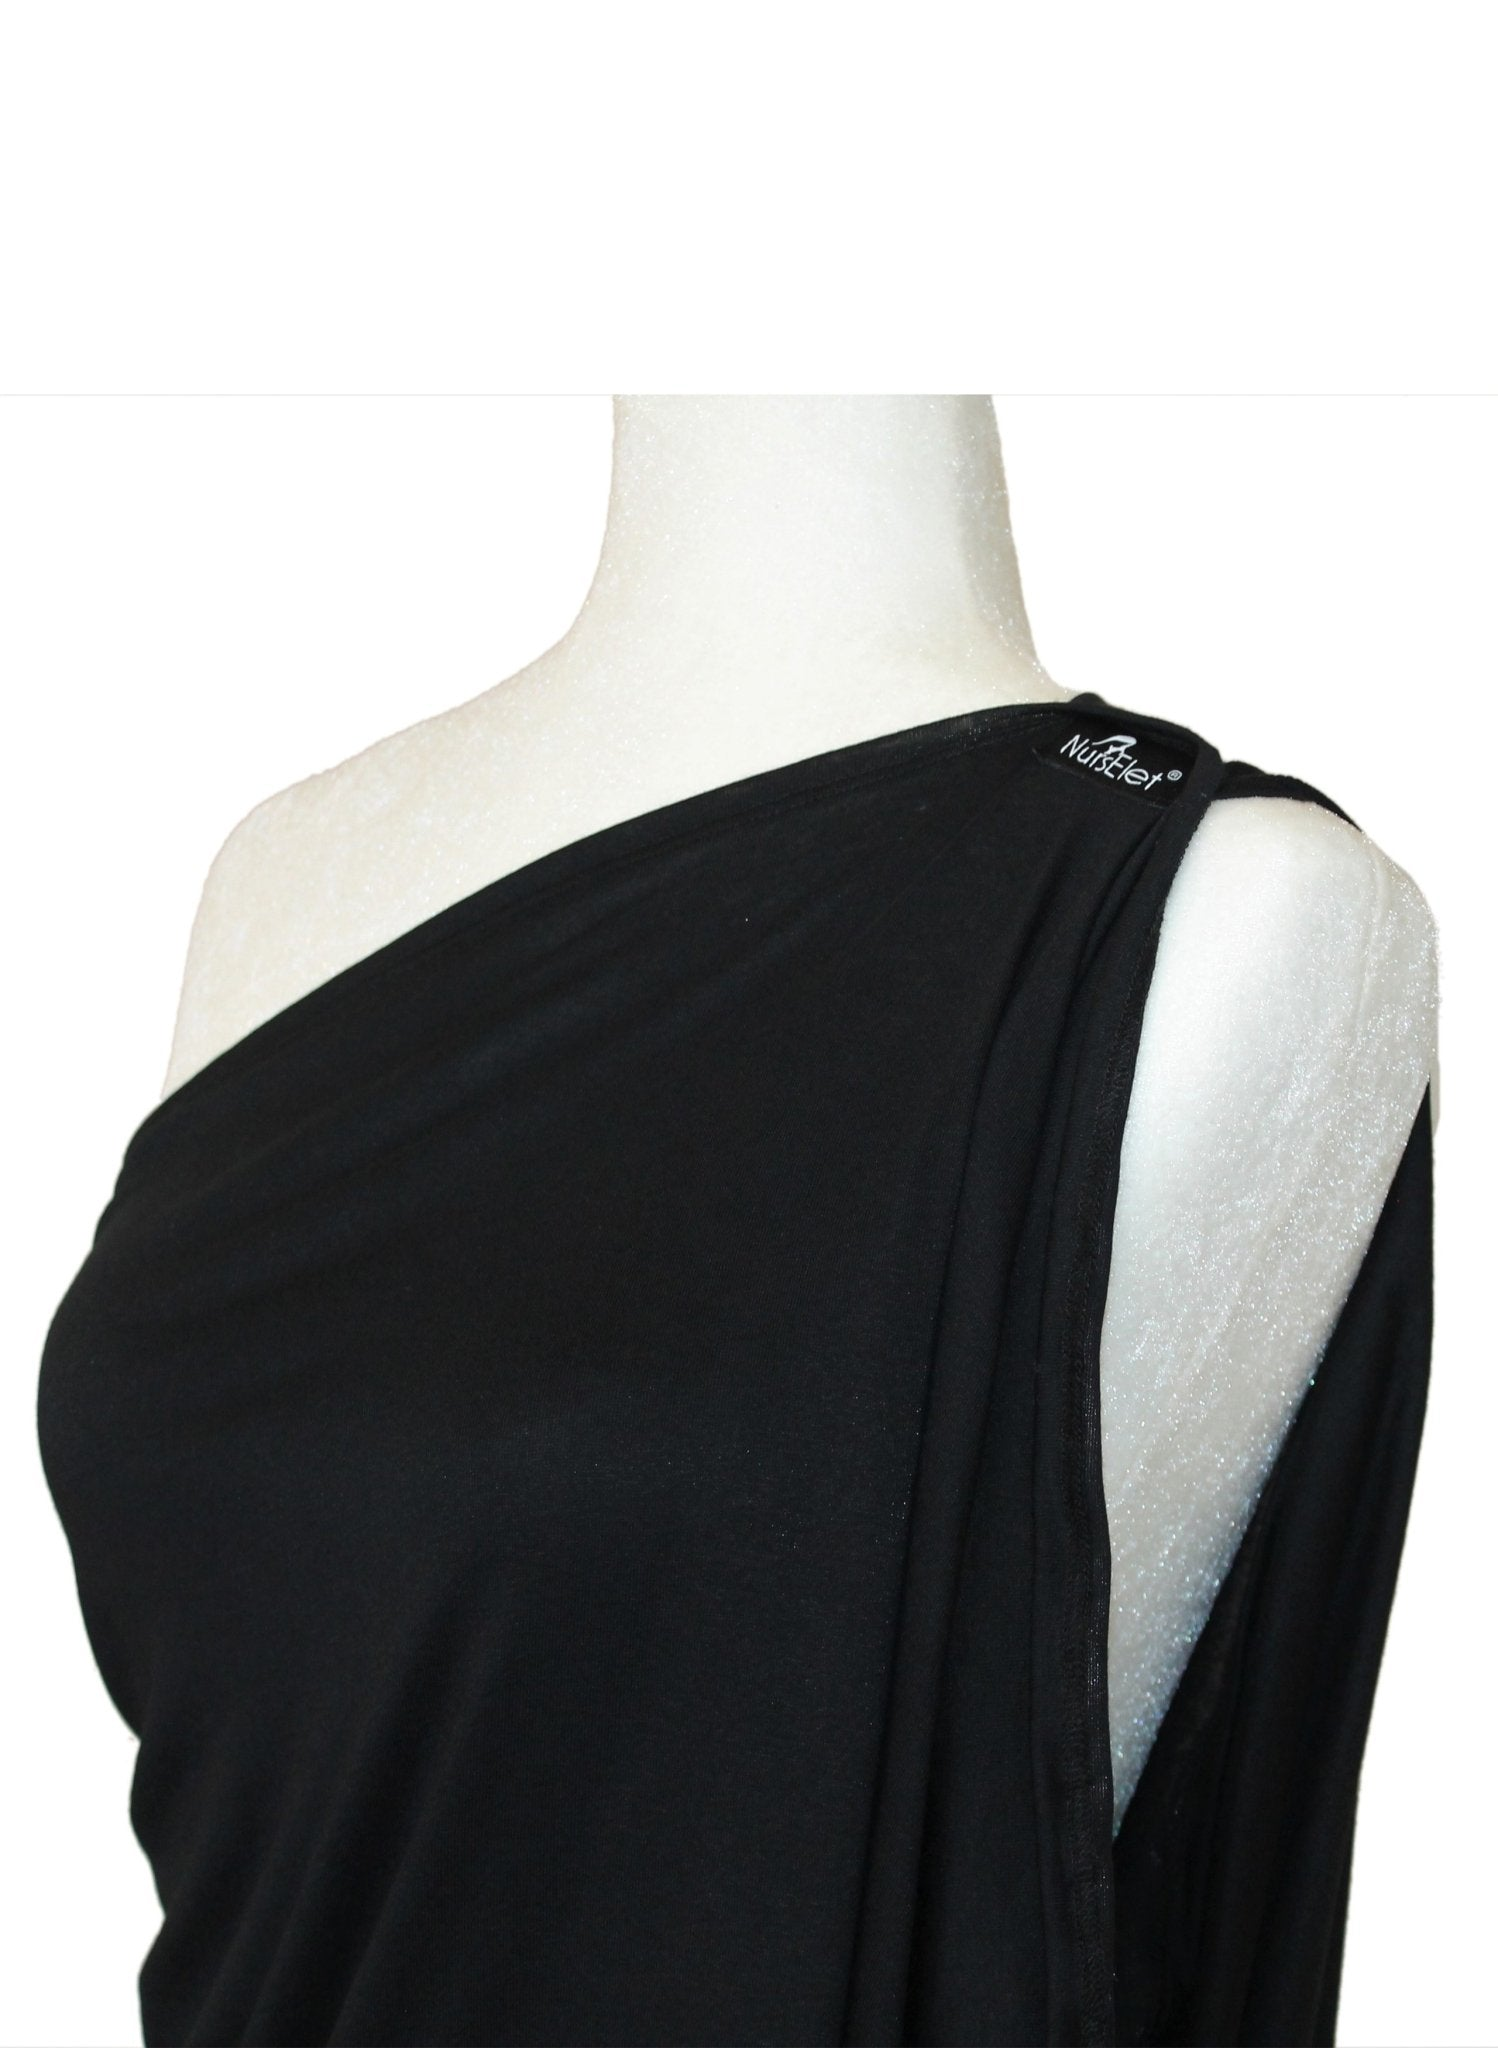 Nursing 360° Scarf/Cover - Onyx - Mums and Bumps